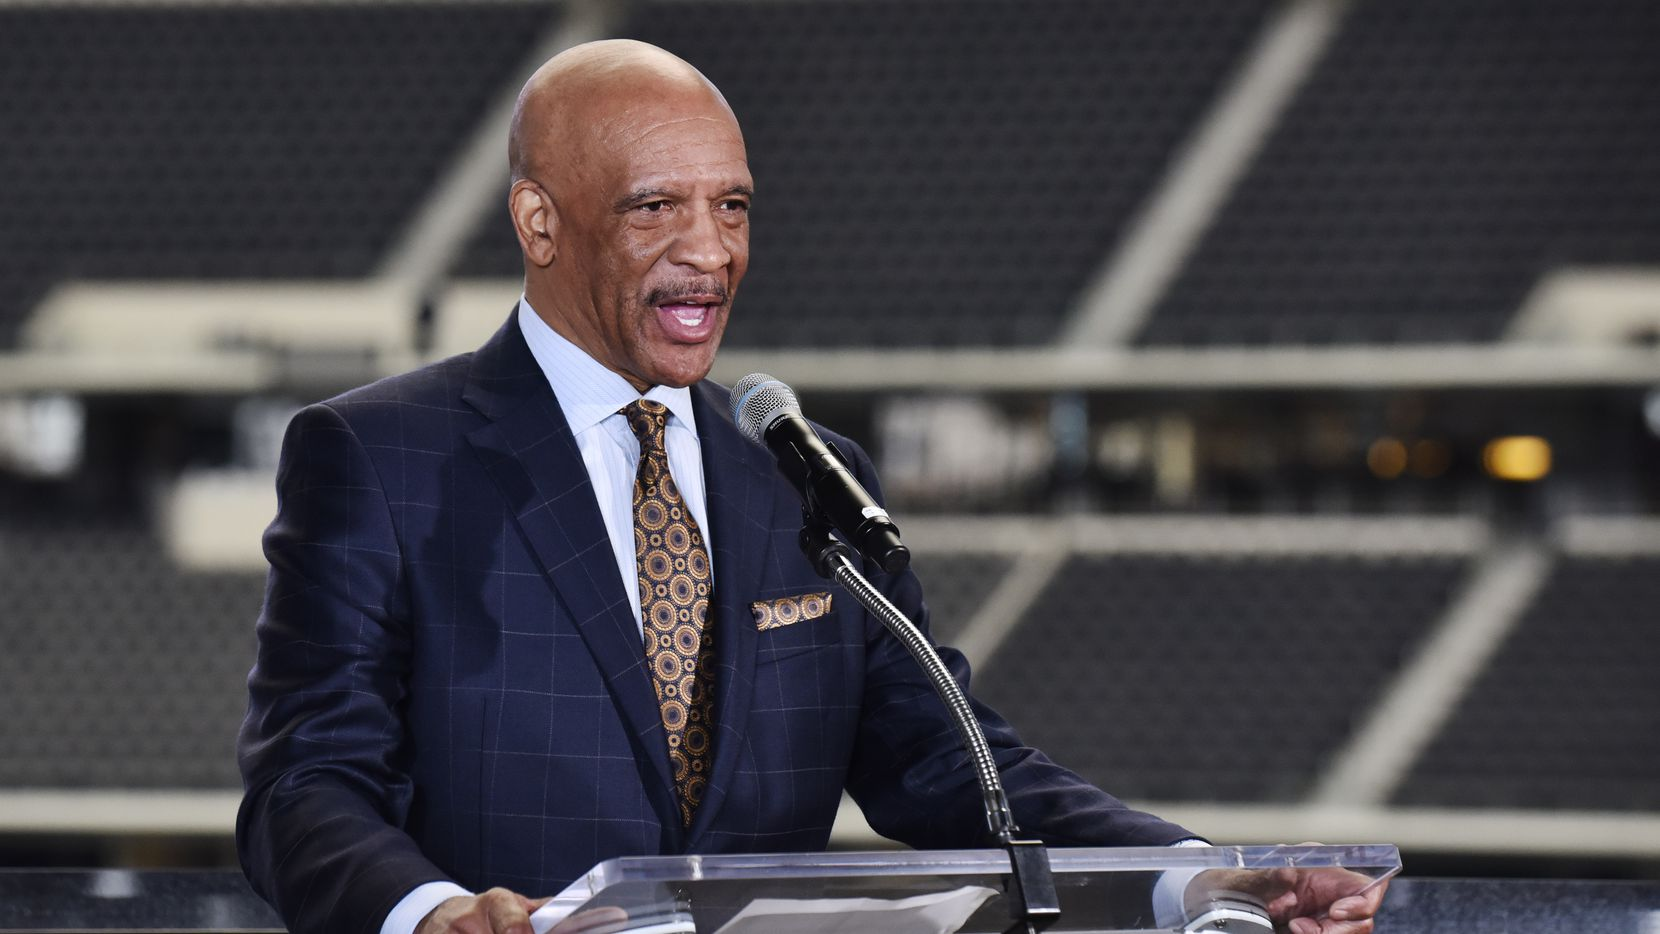 Former Dallas Cowboys player Drew Pearson, left, speaks during a press conference showing the renderings of the NFL Draft Theater and the fan Experience for this year's NFL Draft at AT&T Stadium in Arlington, Wednesday, March 14, 2018.